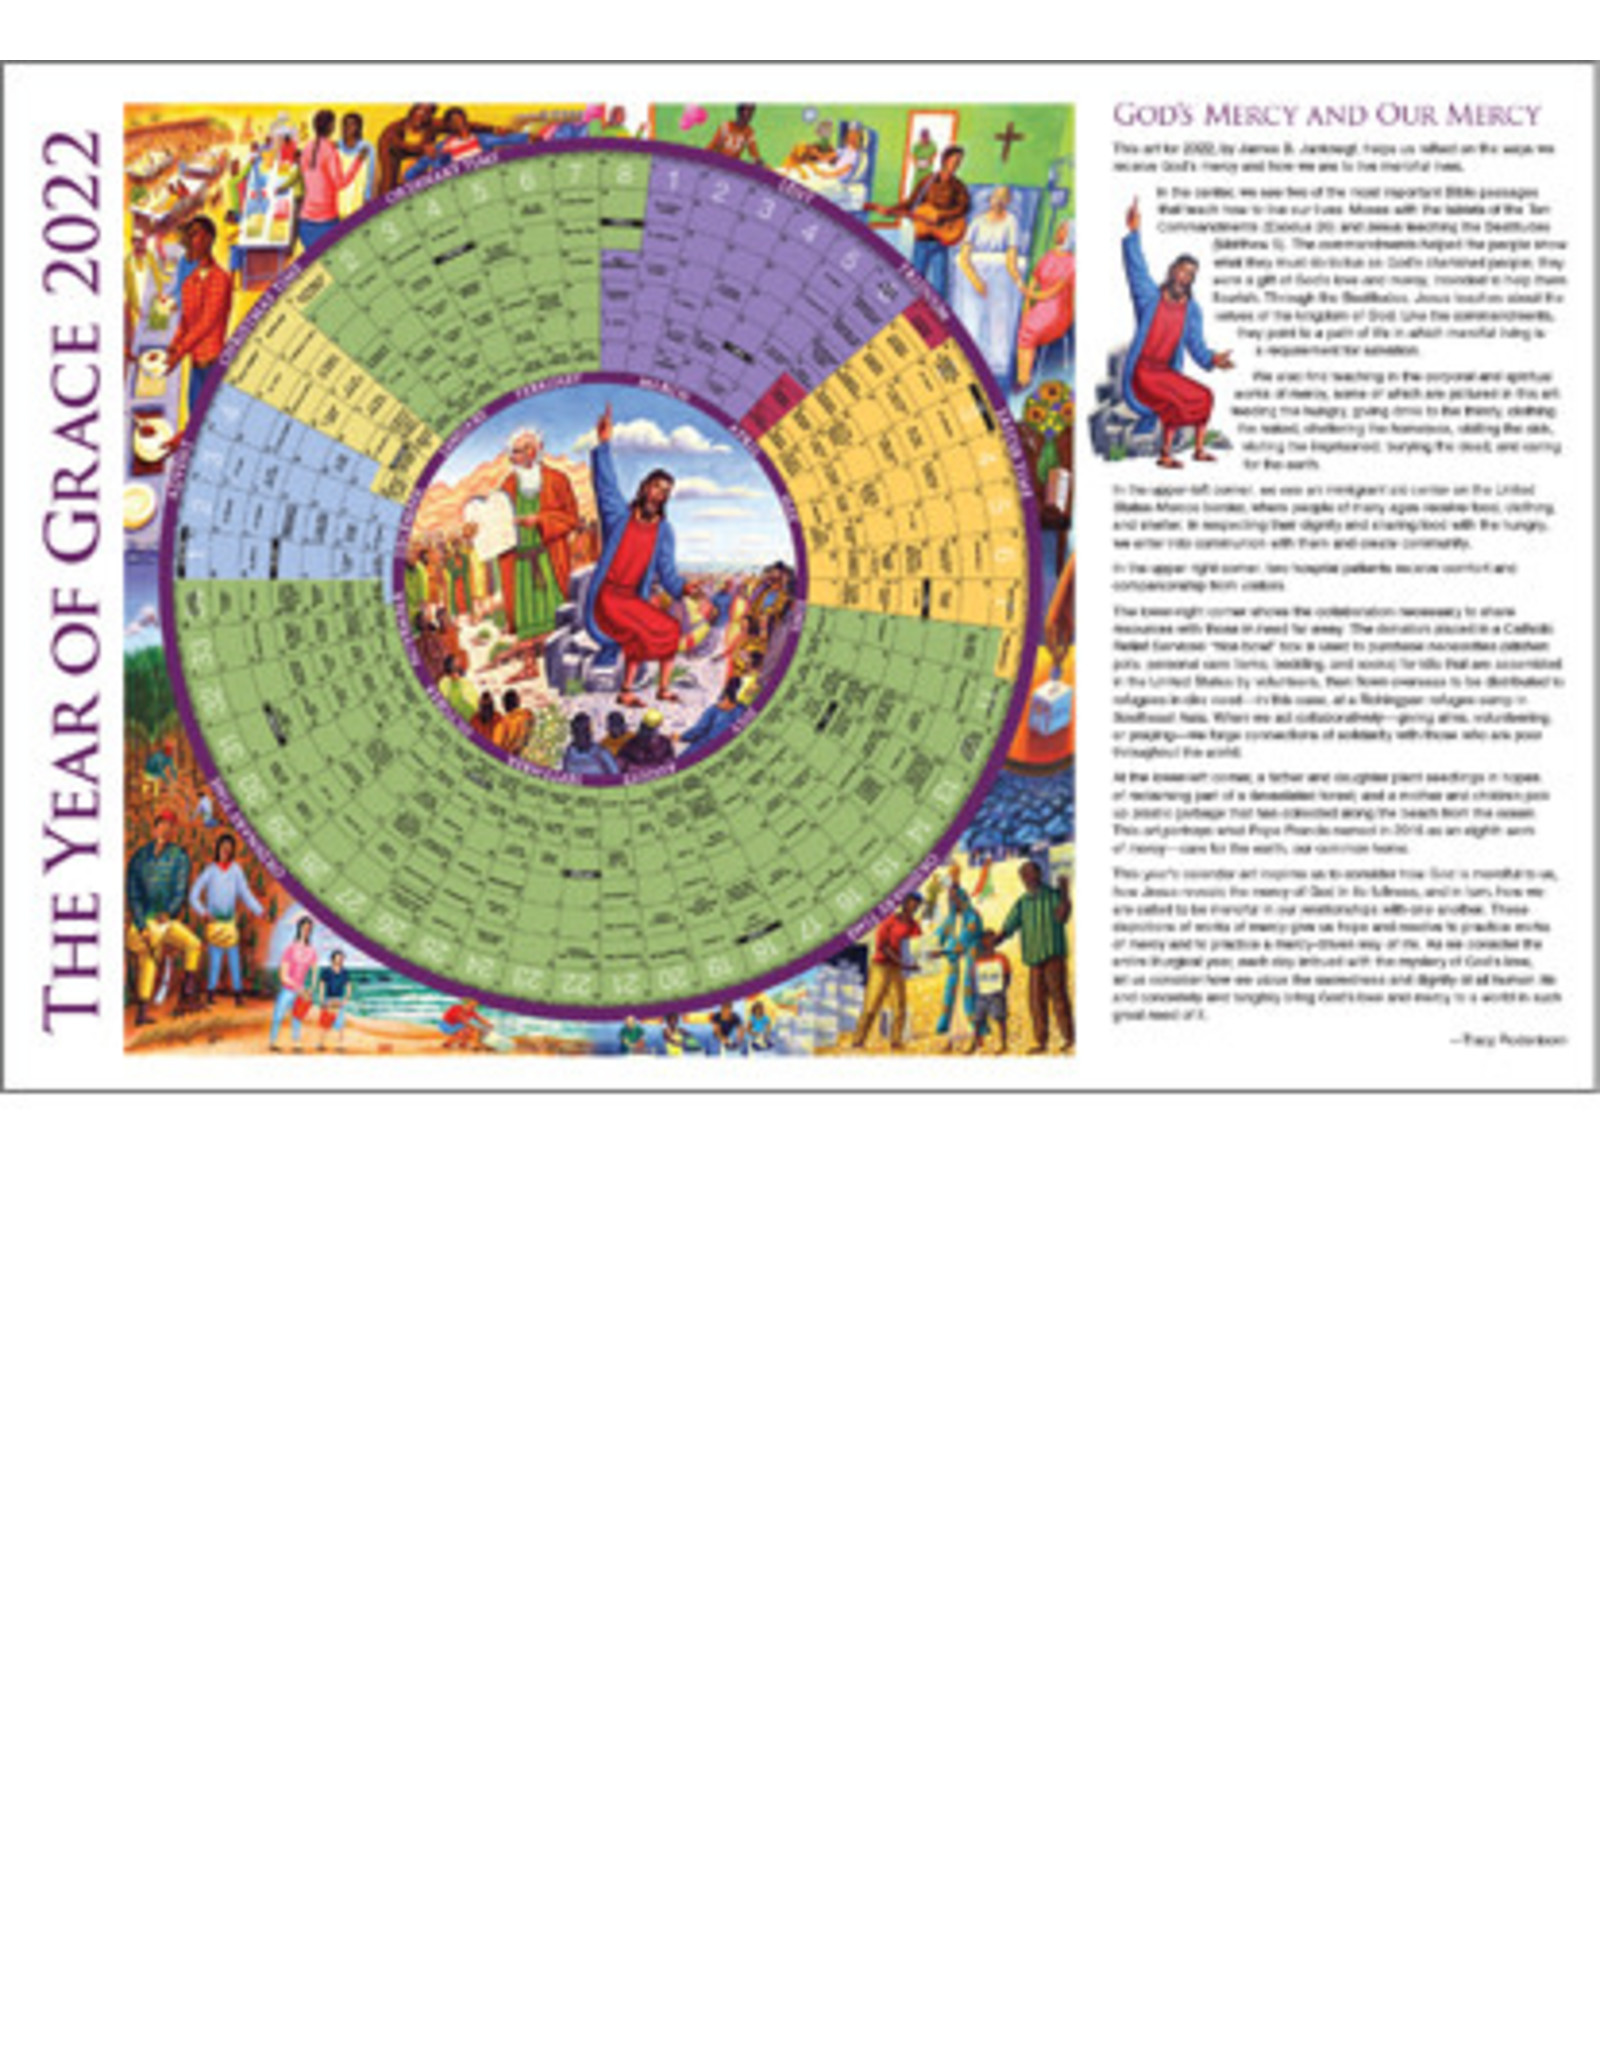 2022 Year of Grace Calendar - Paper Placemat Size (25)